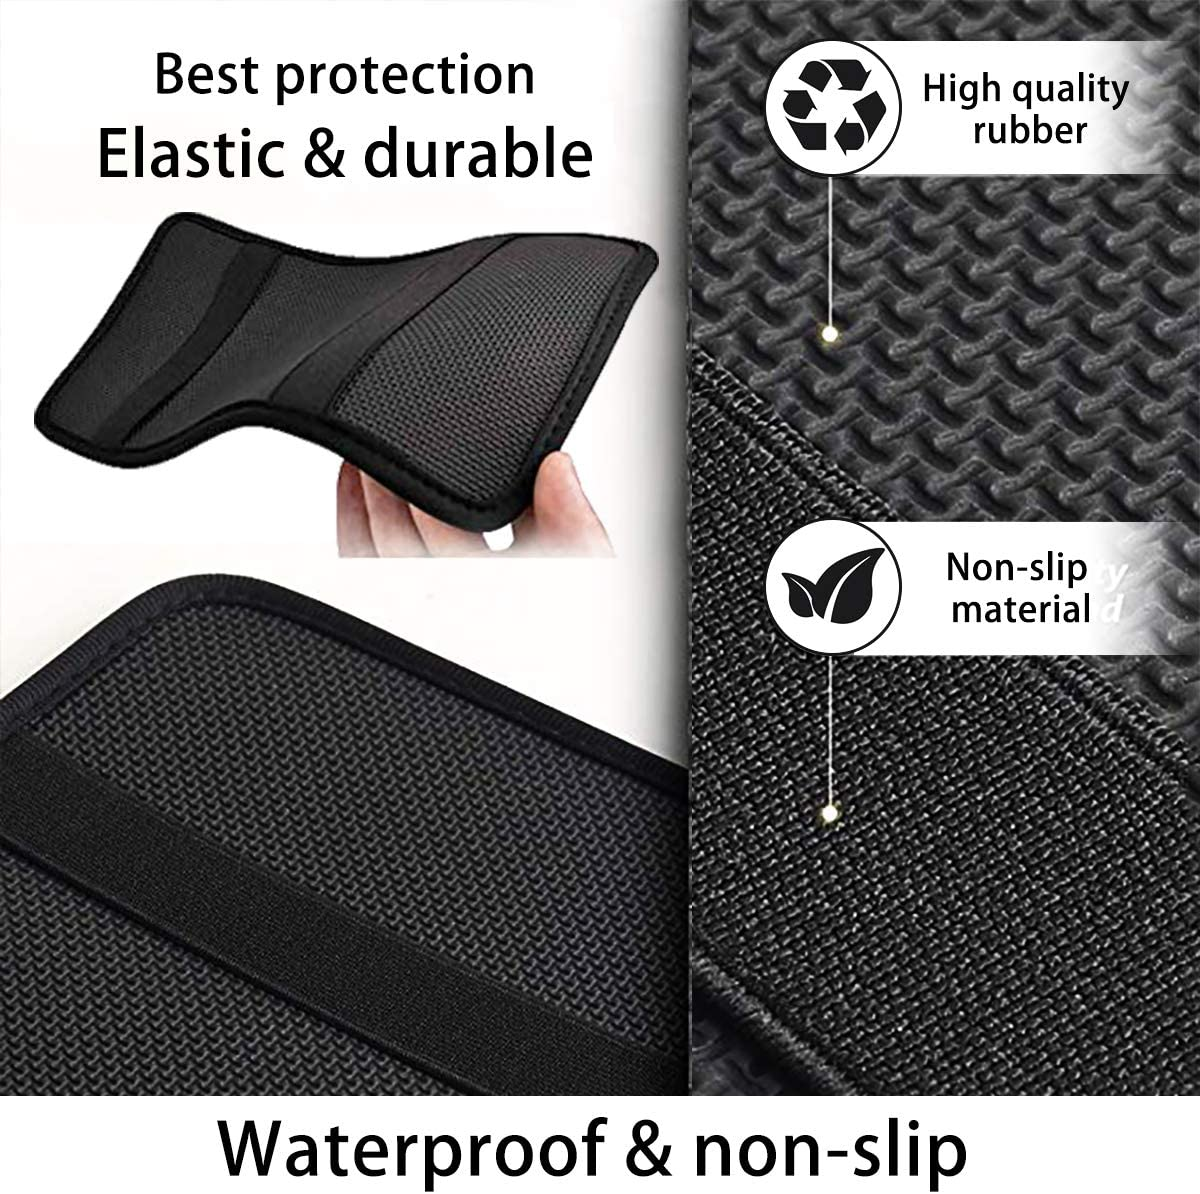 Advocator Tie dye Printed Auto Center Console Armrest Cover Protector Universal Car Armrest Box Cover Protector Vehicle Accessory Car Decoration